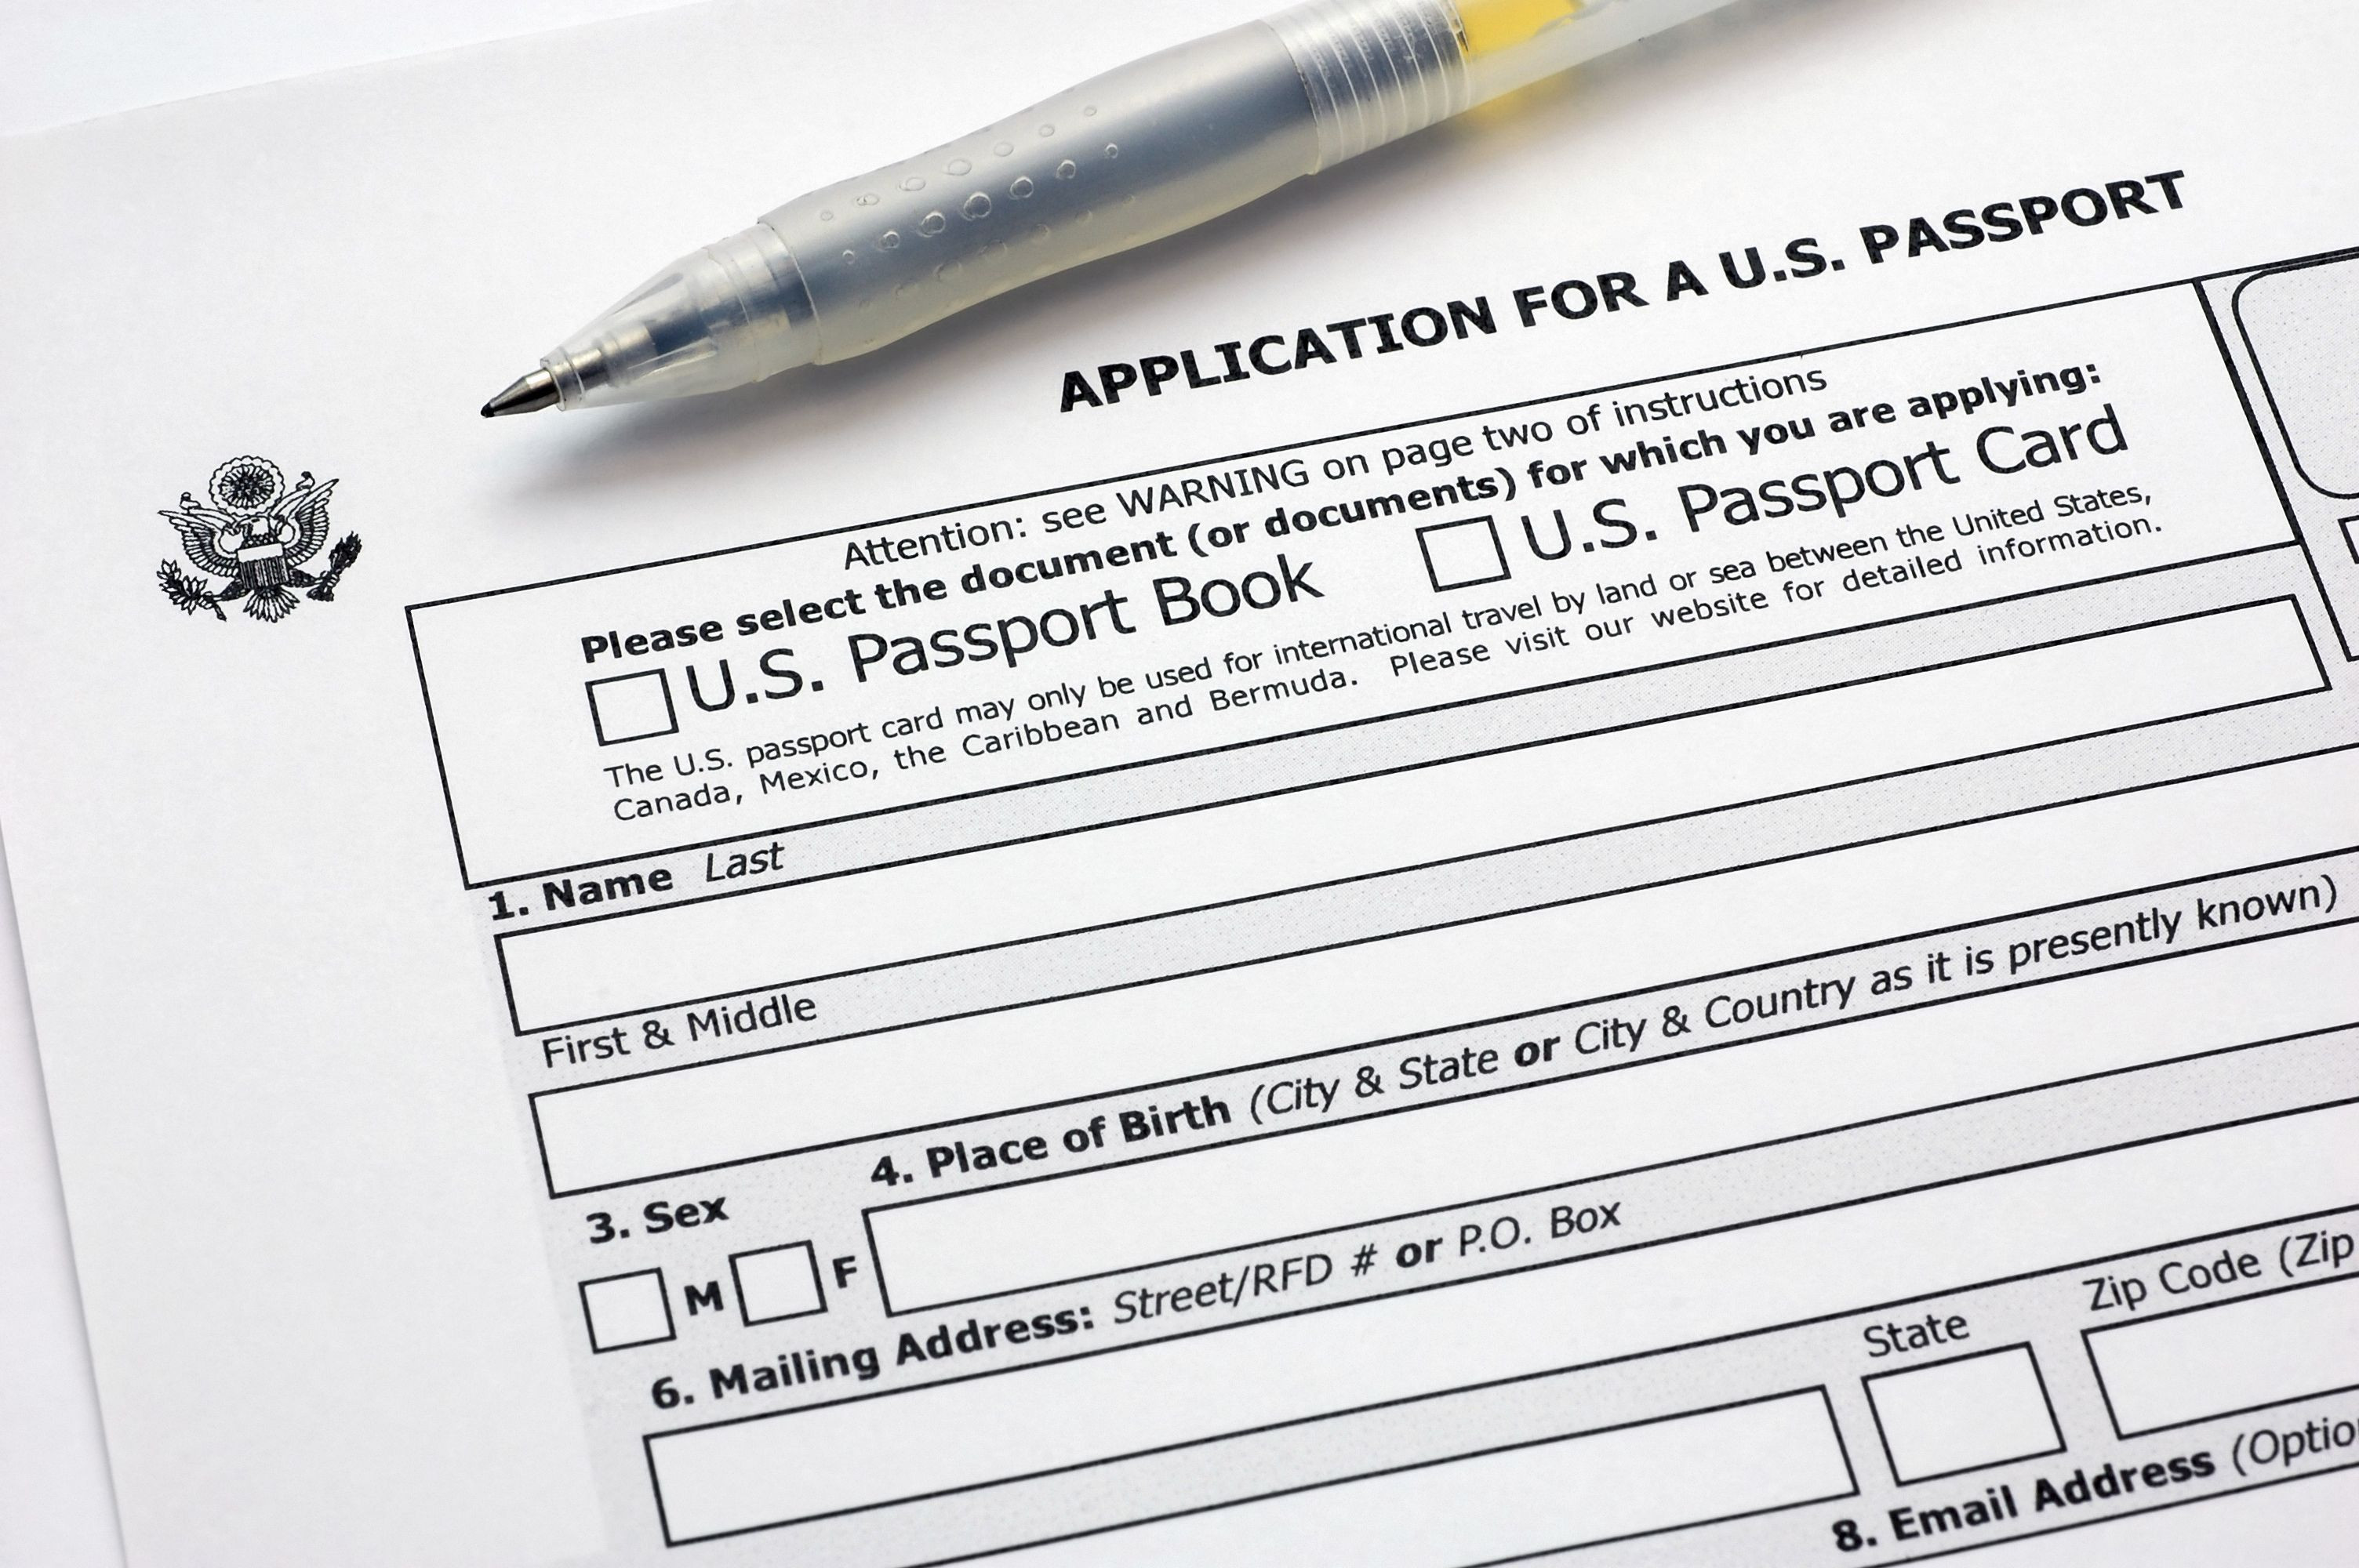 Arizona Birth Certificate Request form Best Of What is A Us Passport Card and How Can You Get E